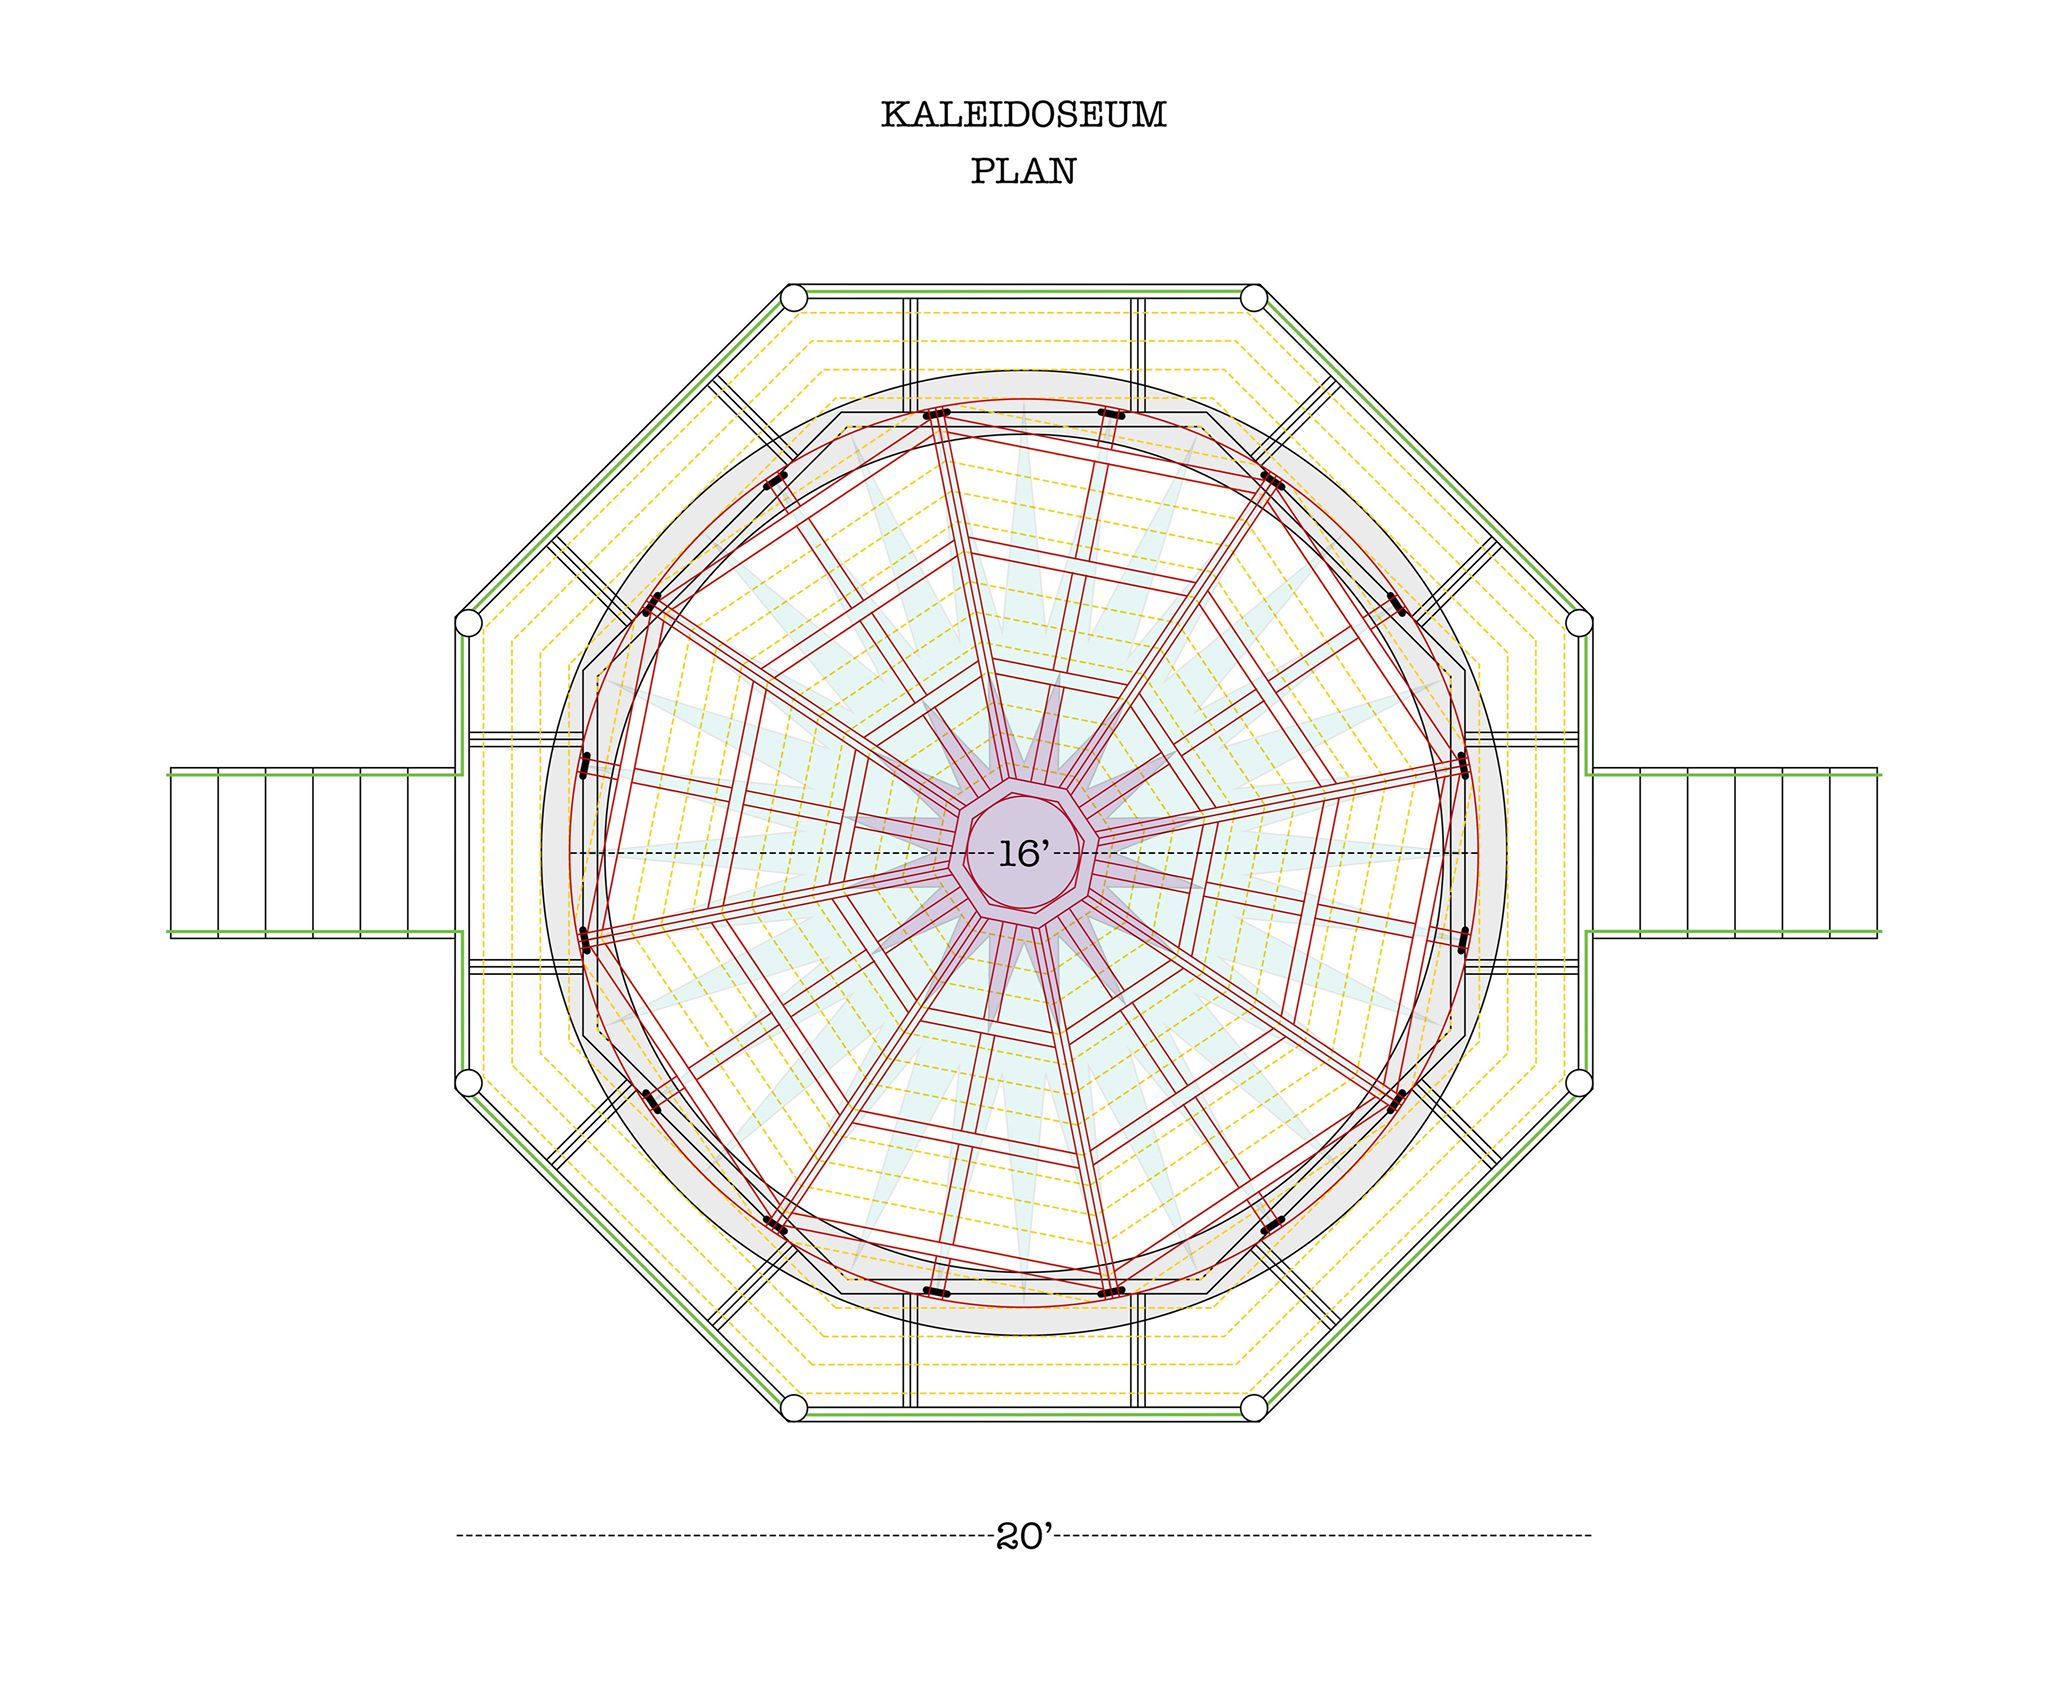 Tom-Kaleidoseum-drone-view-2